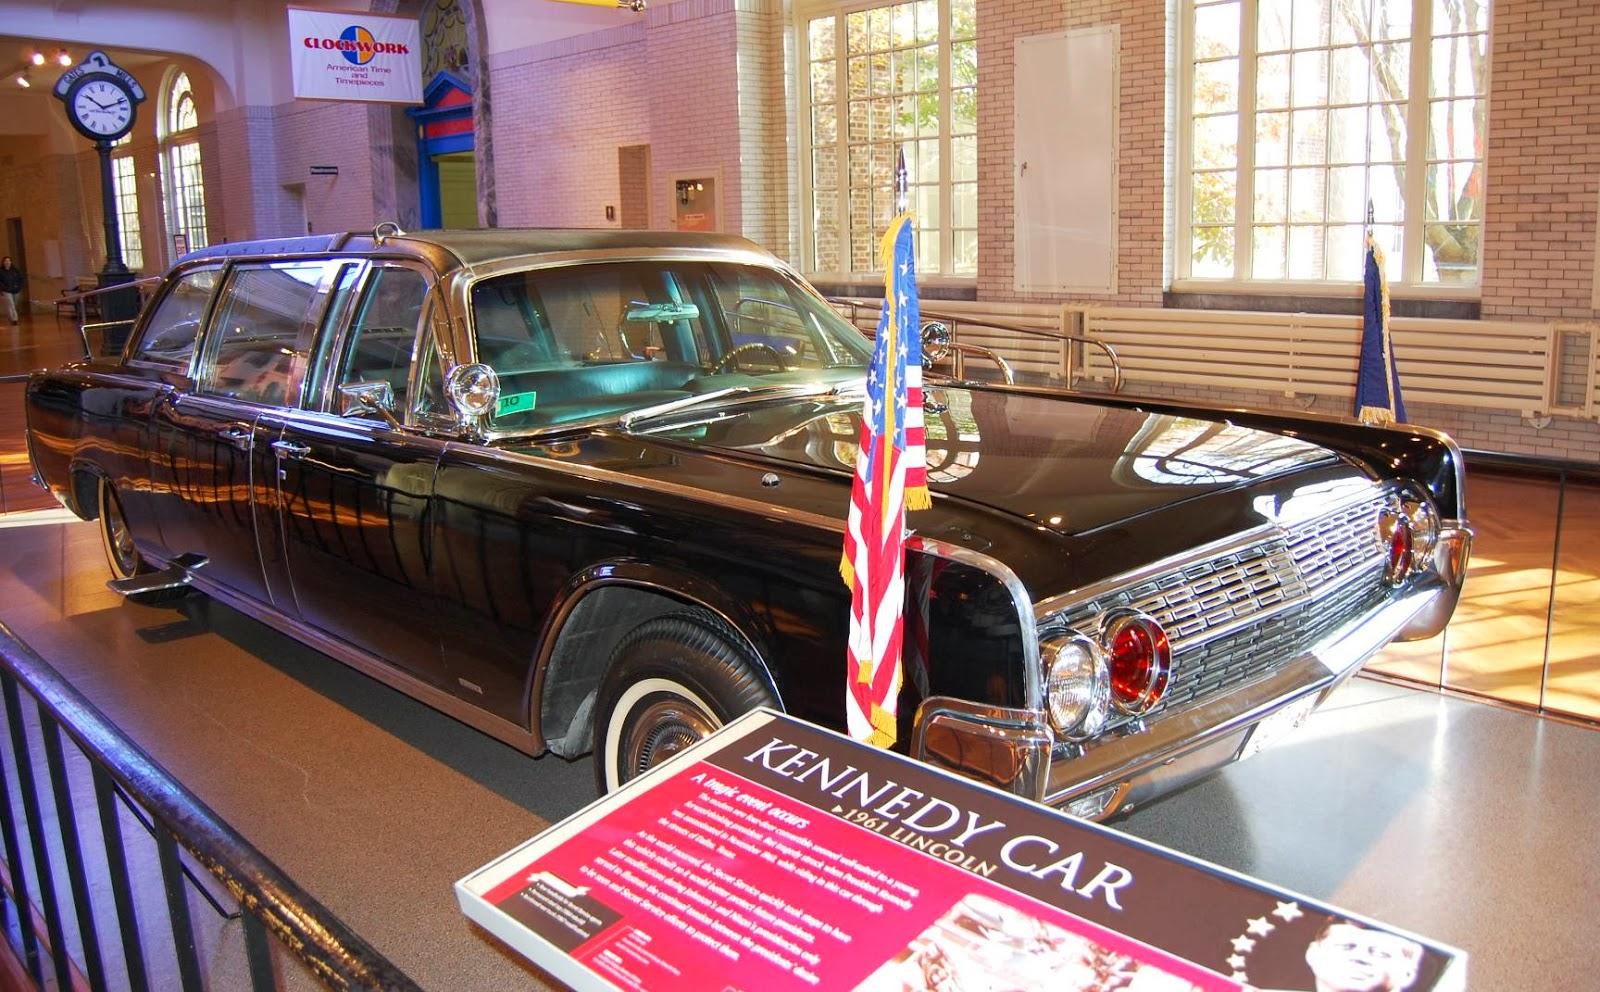 one tank trips president john f kennedy assassination limousine retired at the henry ford. Black Bedroom Furniture Sets. Home Design Ideas